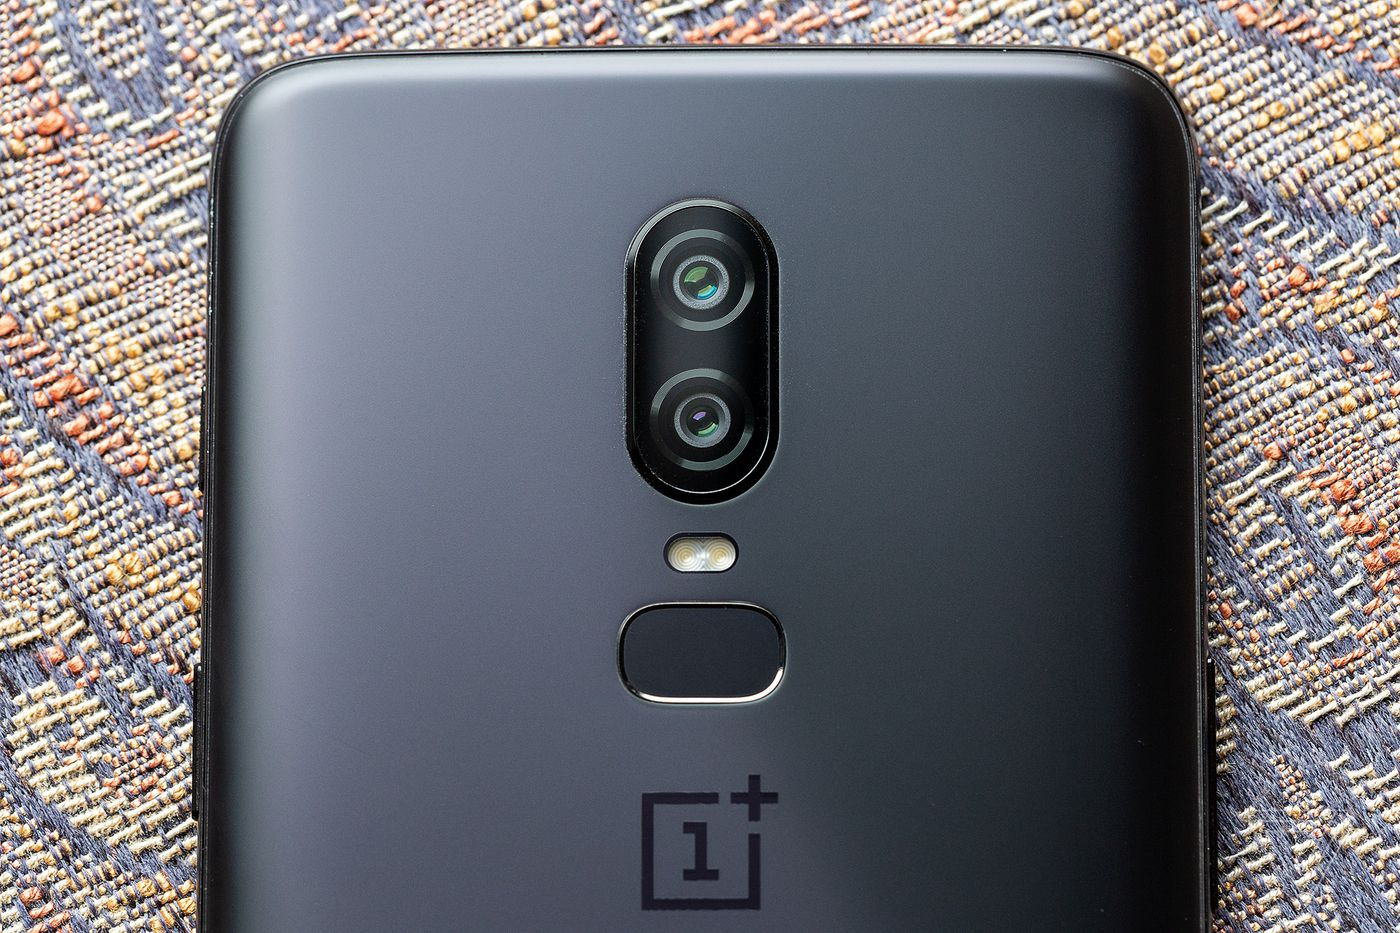 OnePlus 6 review: new phone, same compromises - The Verge